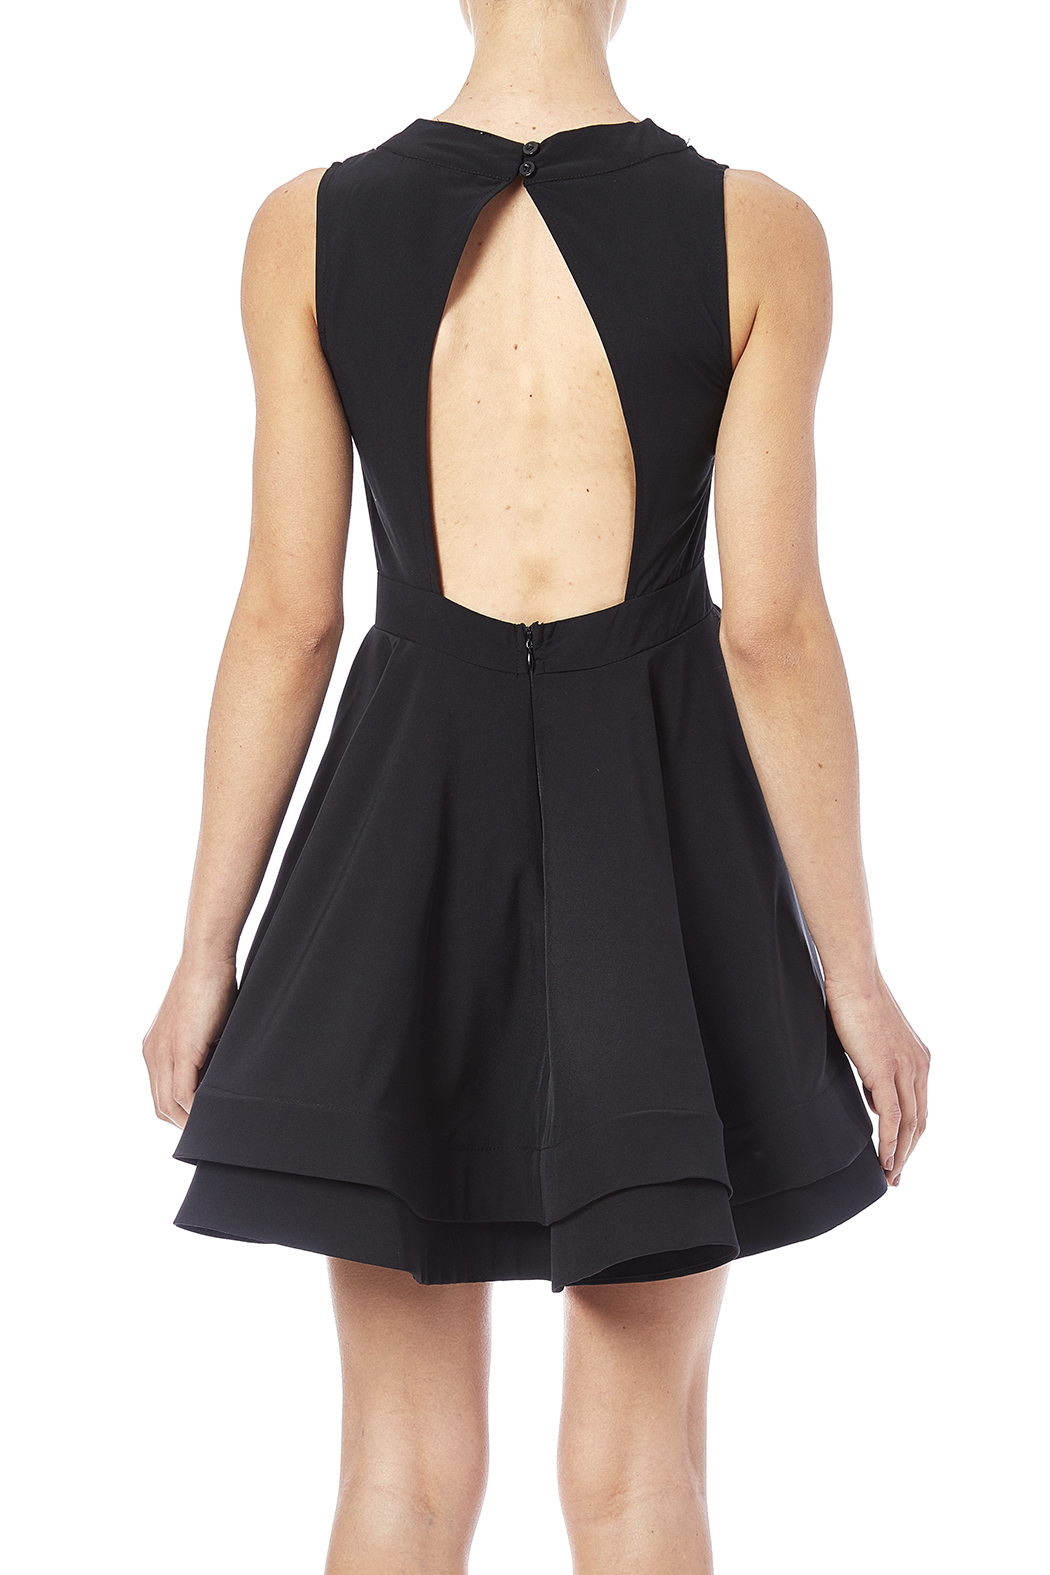 luxxel Cutout Flare Dress - Back Cropped Image